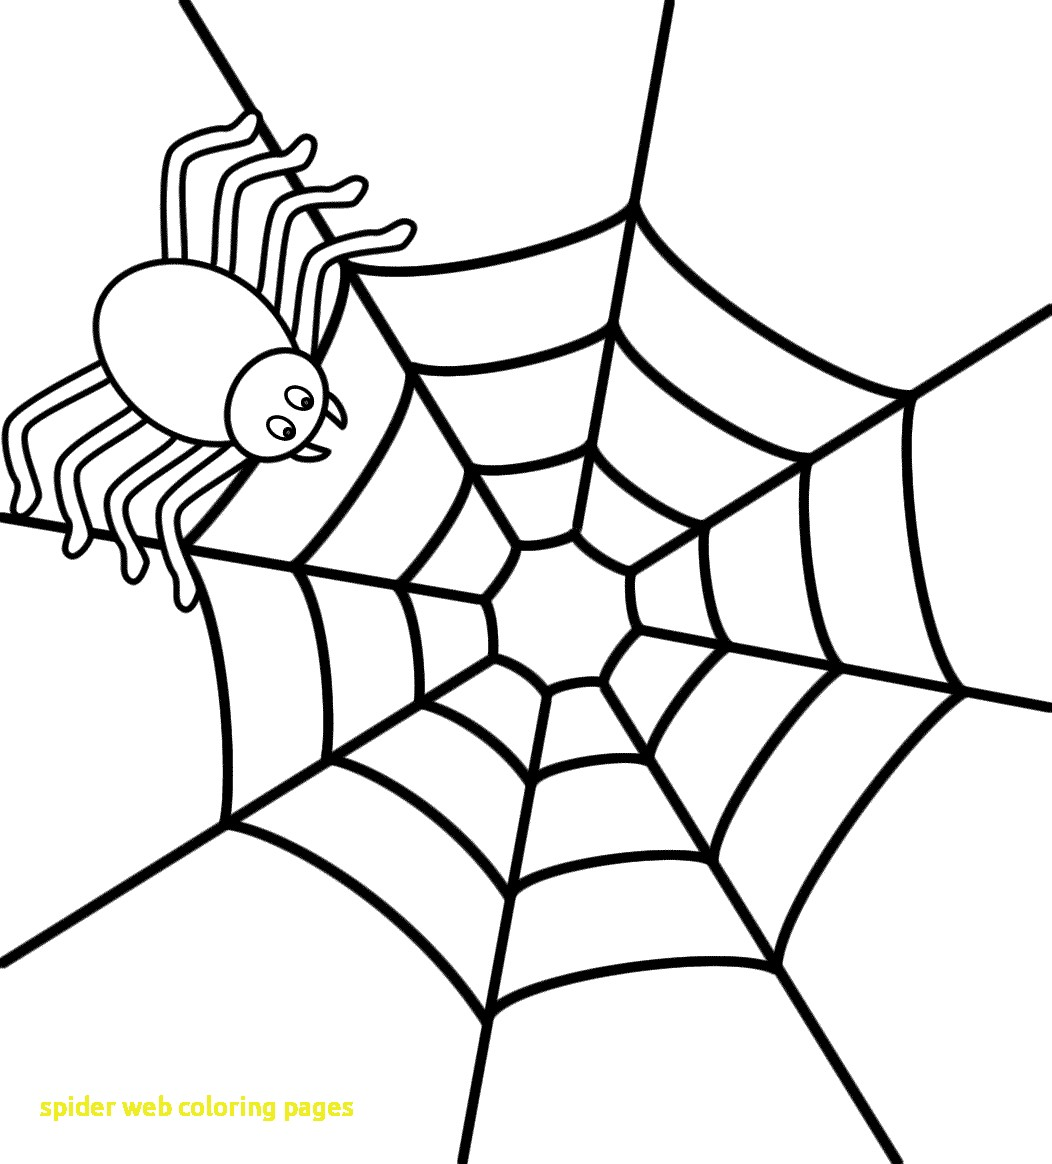 1052x1164 Spider Web Coloring Pages With On A Page Halloween Template